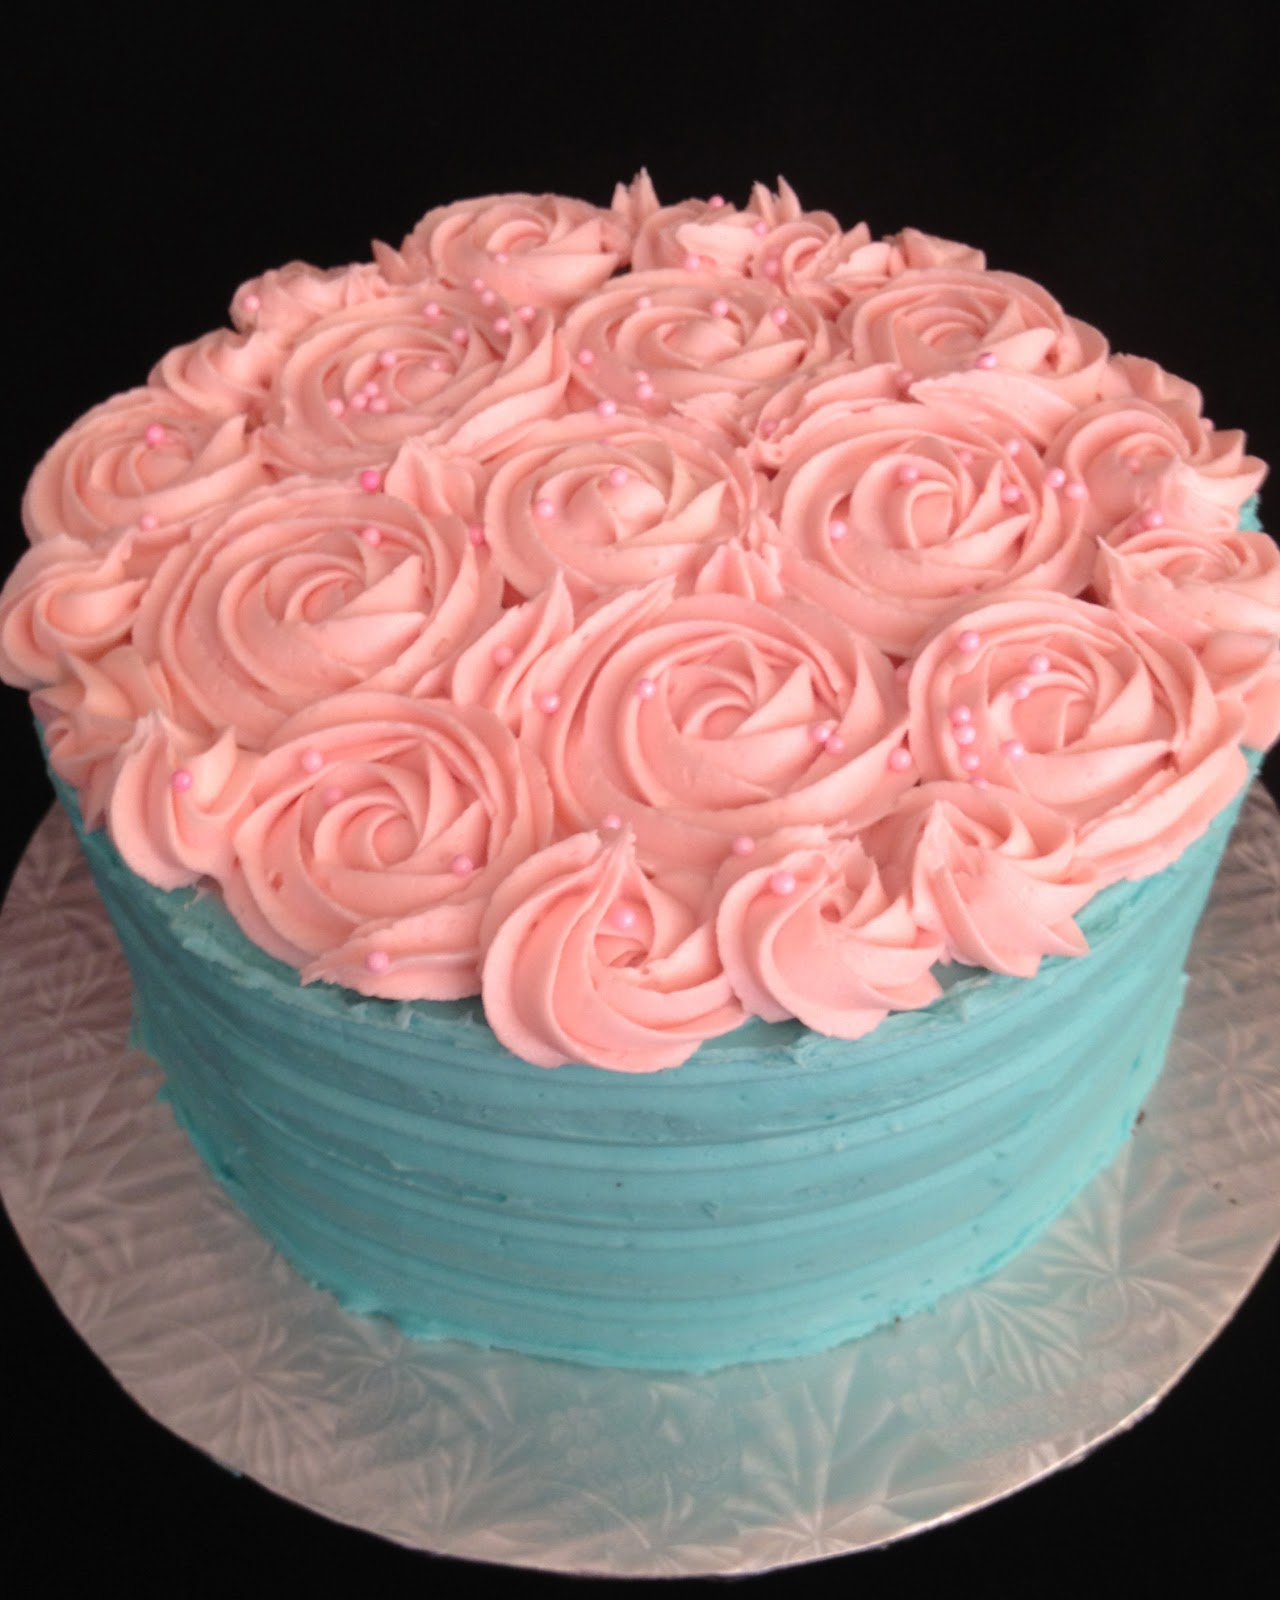 Tiffany Blue with Roses